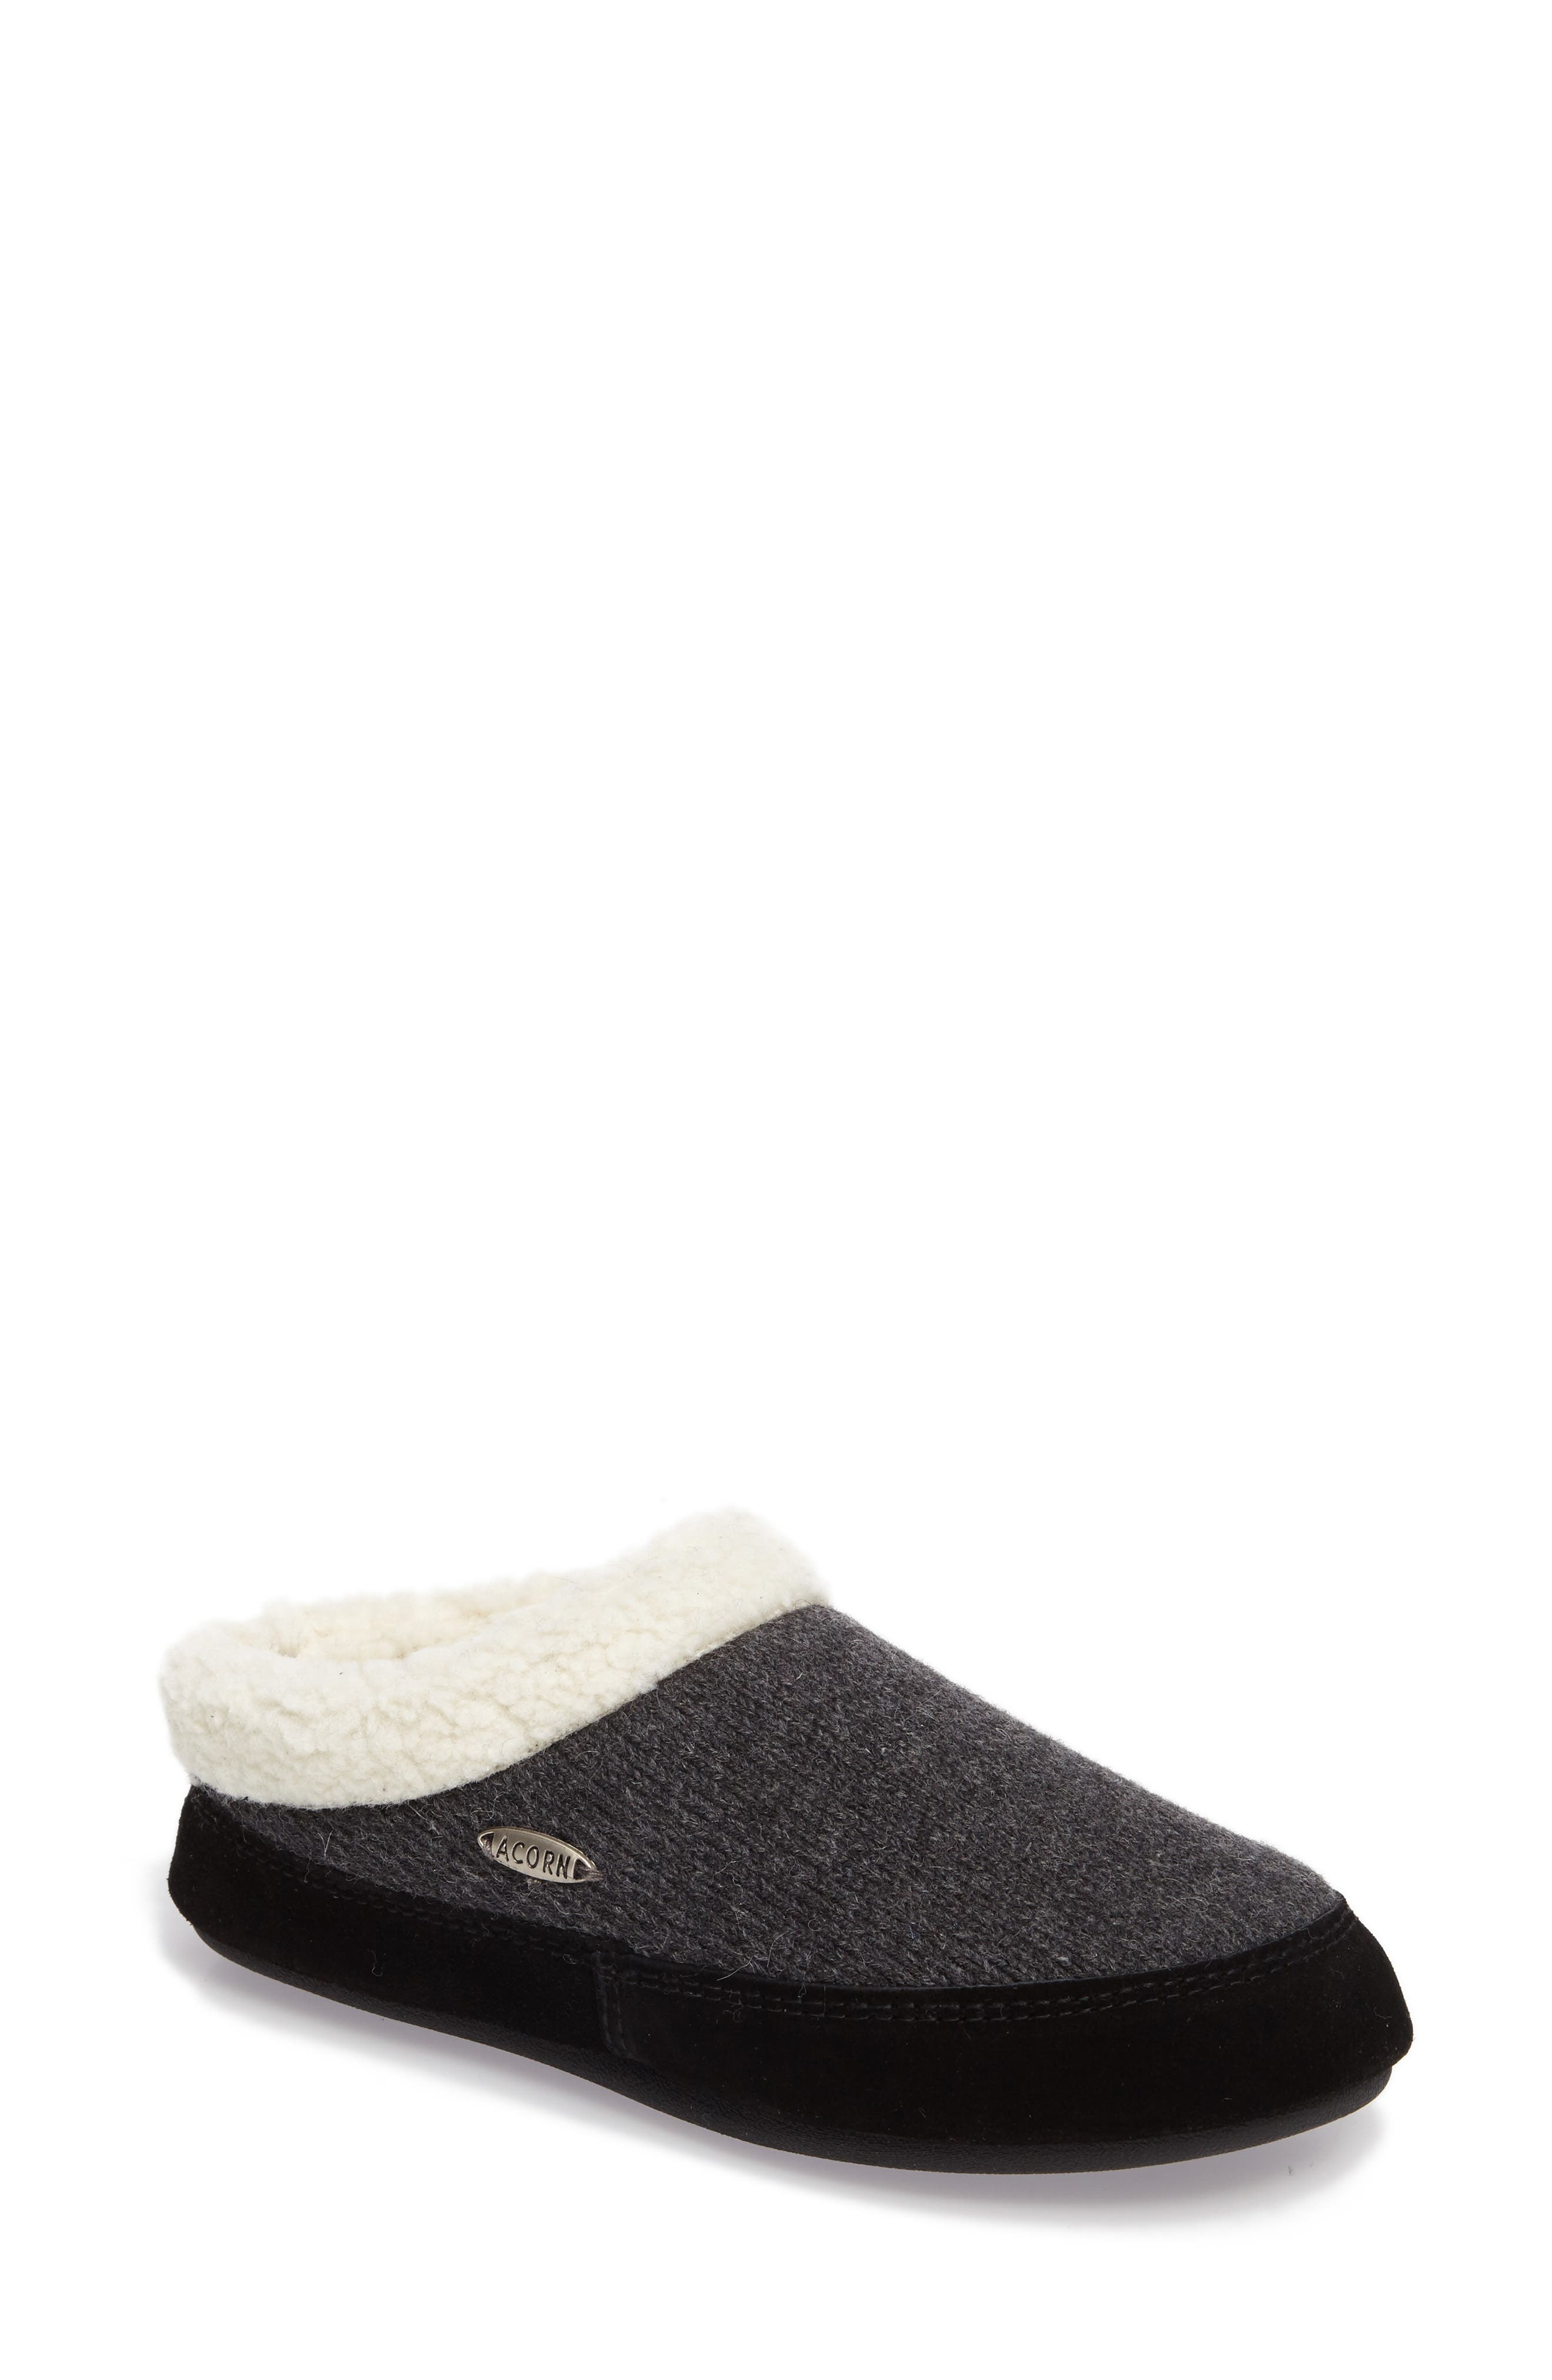 ACORN Ragg Mule Slipper in Dark Charcoal Heather